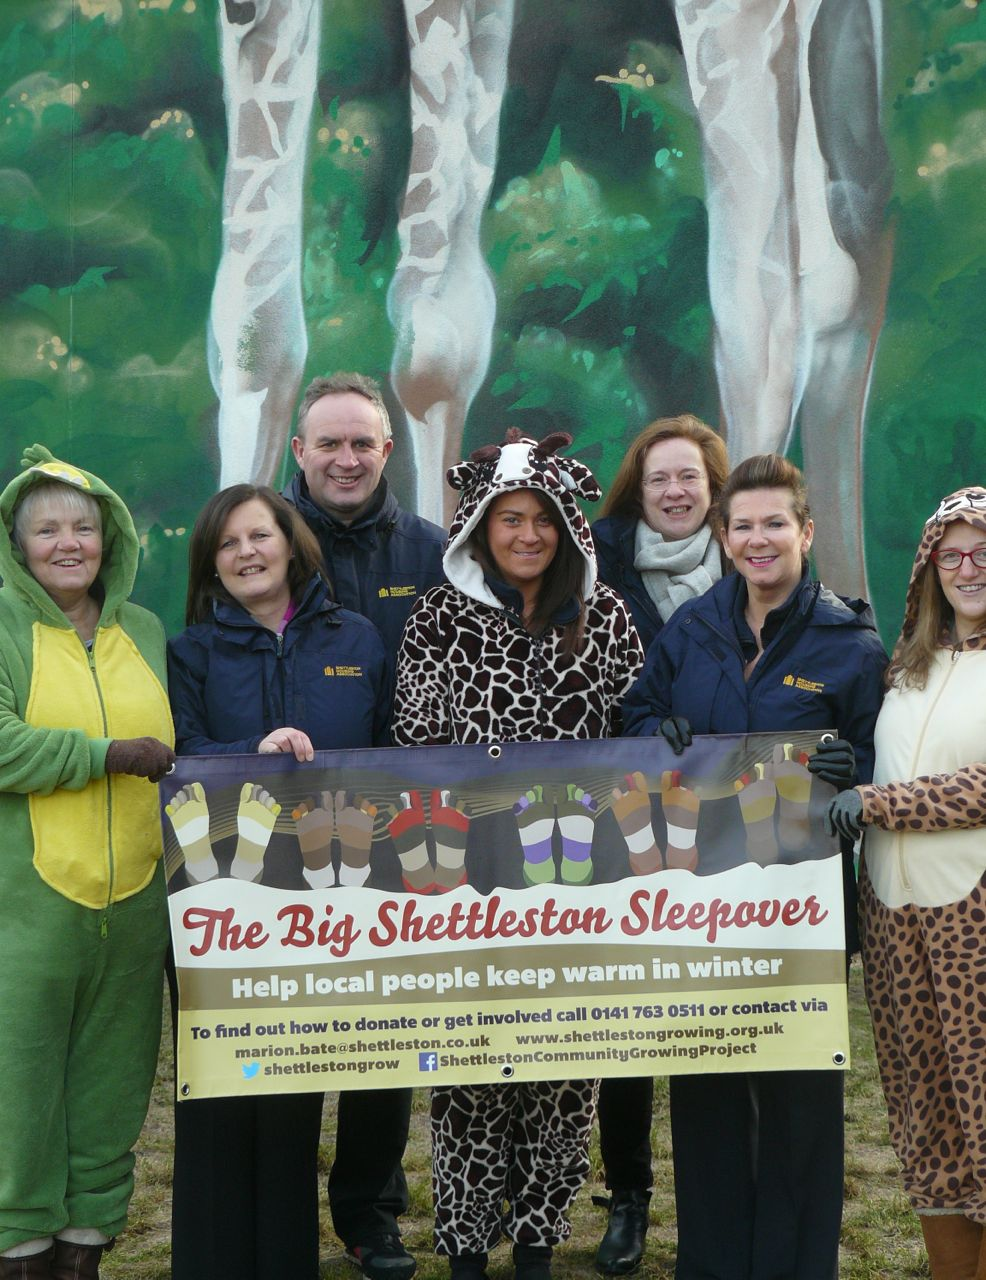 The Big Shettleston Sleepover